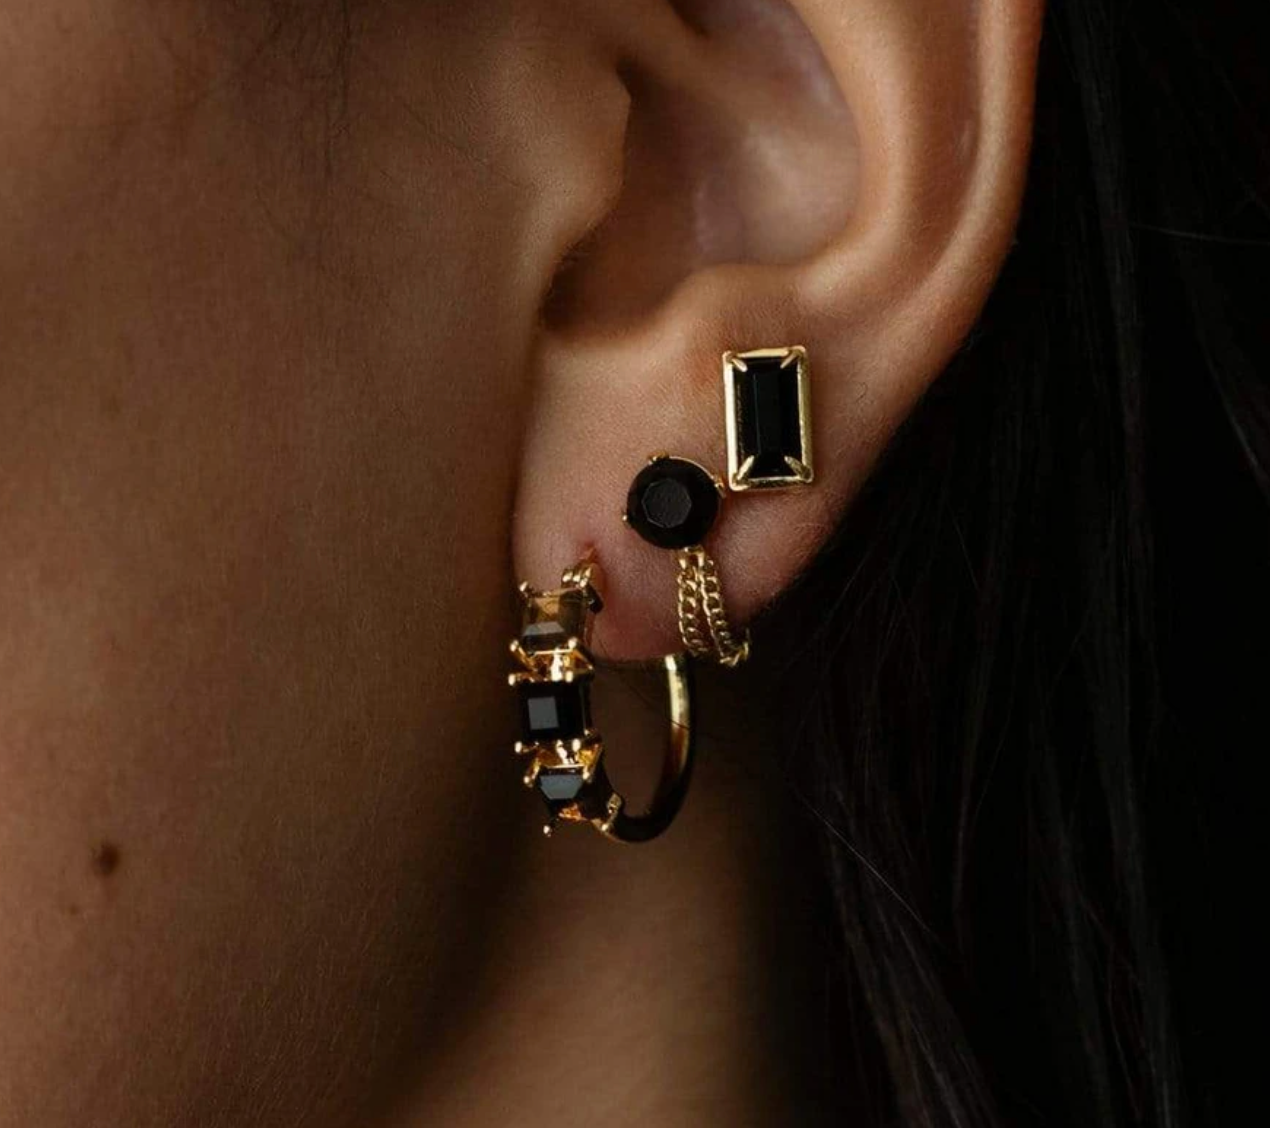 Diana Gemstone Earrings in Black Onyx